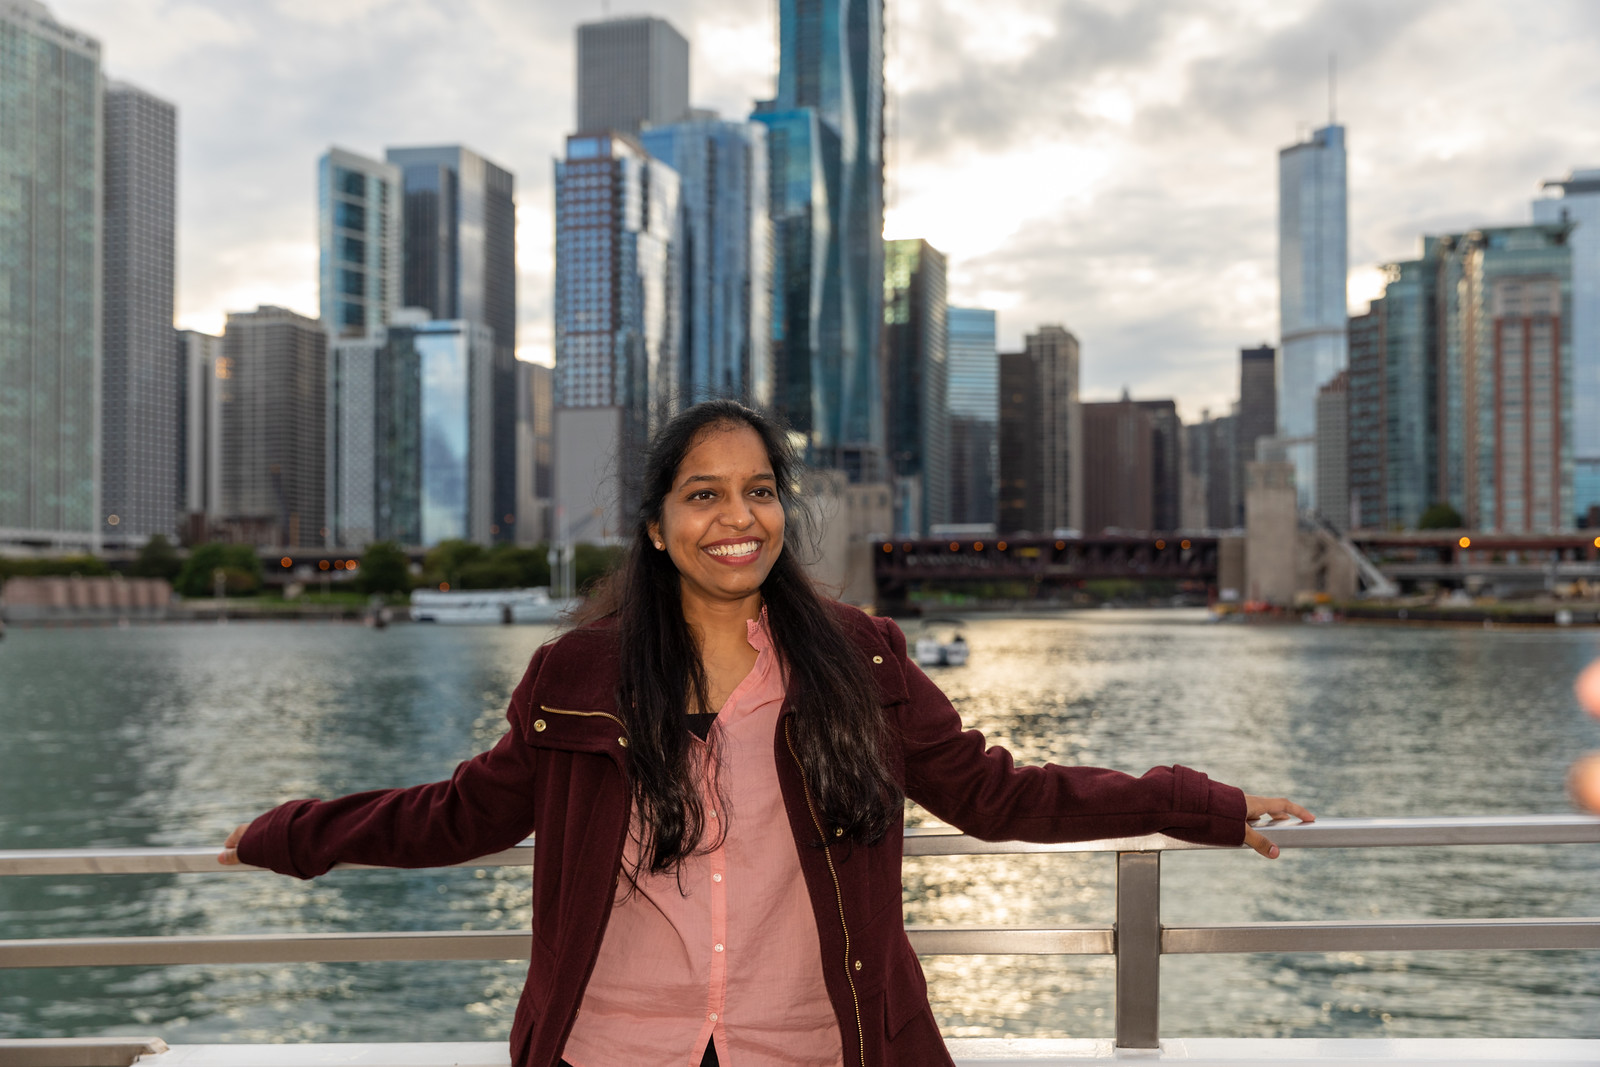 A smiling Roosevelt student standing by the balcony on a Chicago boat tour